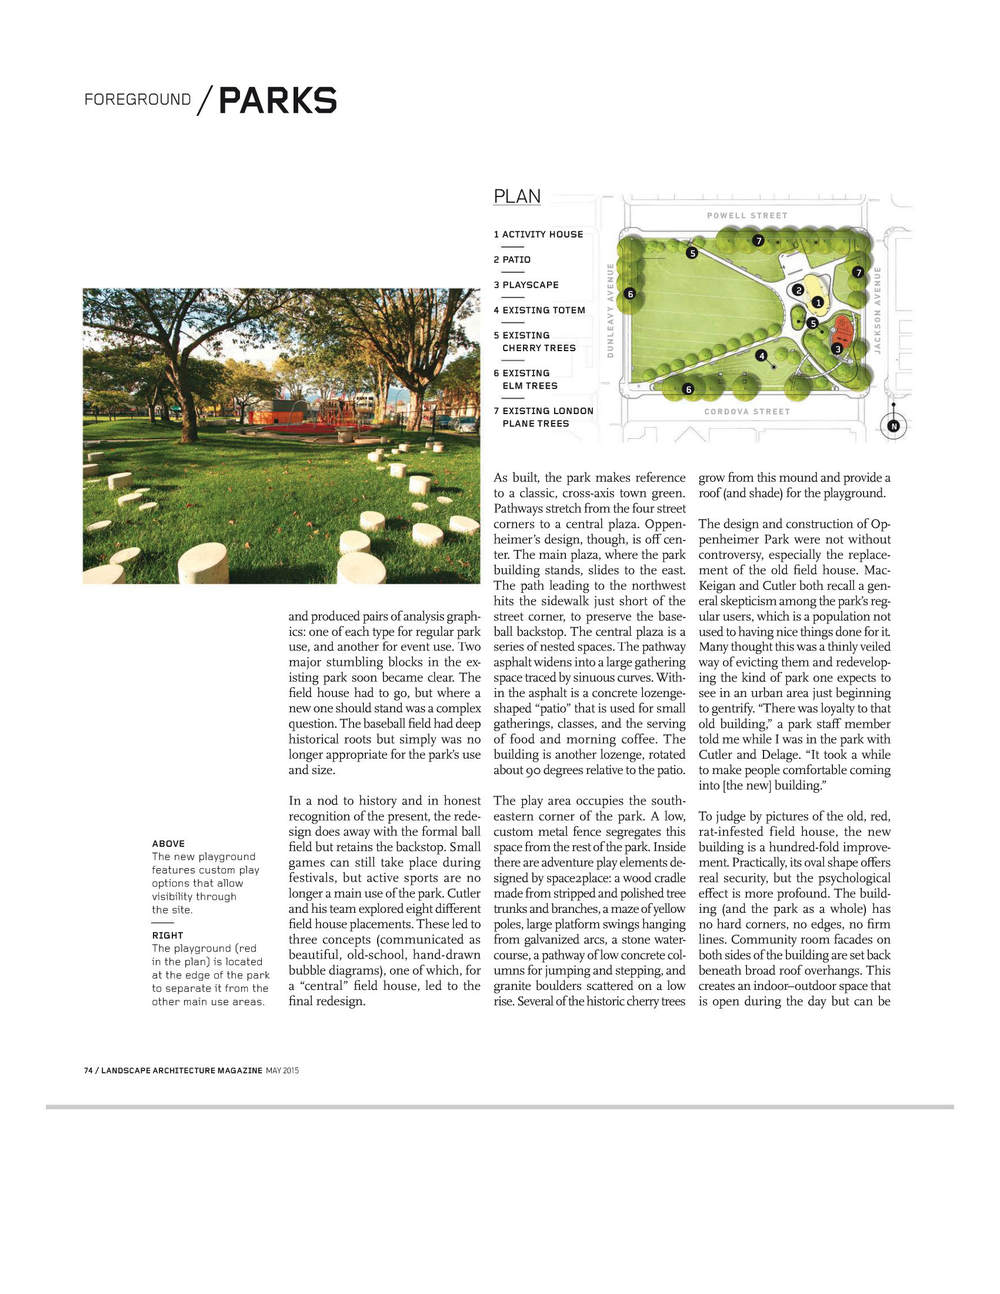 Landscape Architecture Magazine | Oppenheimer park | May 2015_Page_4.jpg